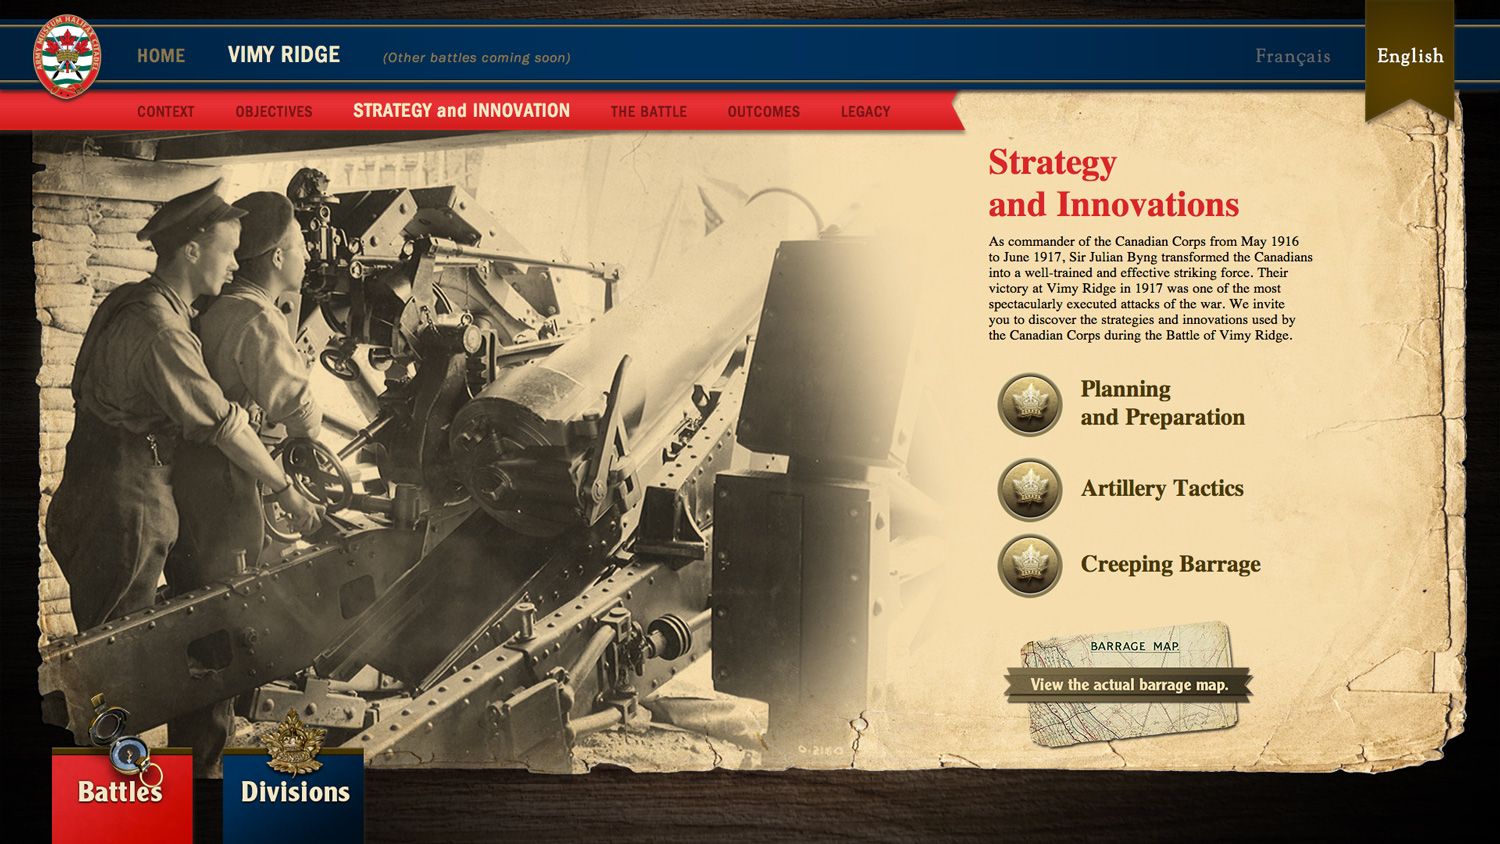 INTERACTIVE The popular conception of WWI is of battles that achieved little, but while the front lines may not have moved dramatically, each battle had innovations and outcomes that shaped the course of the war.